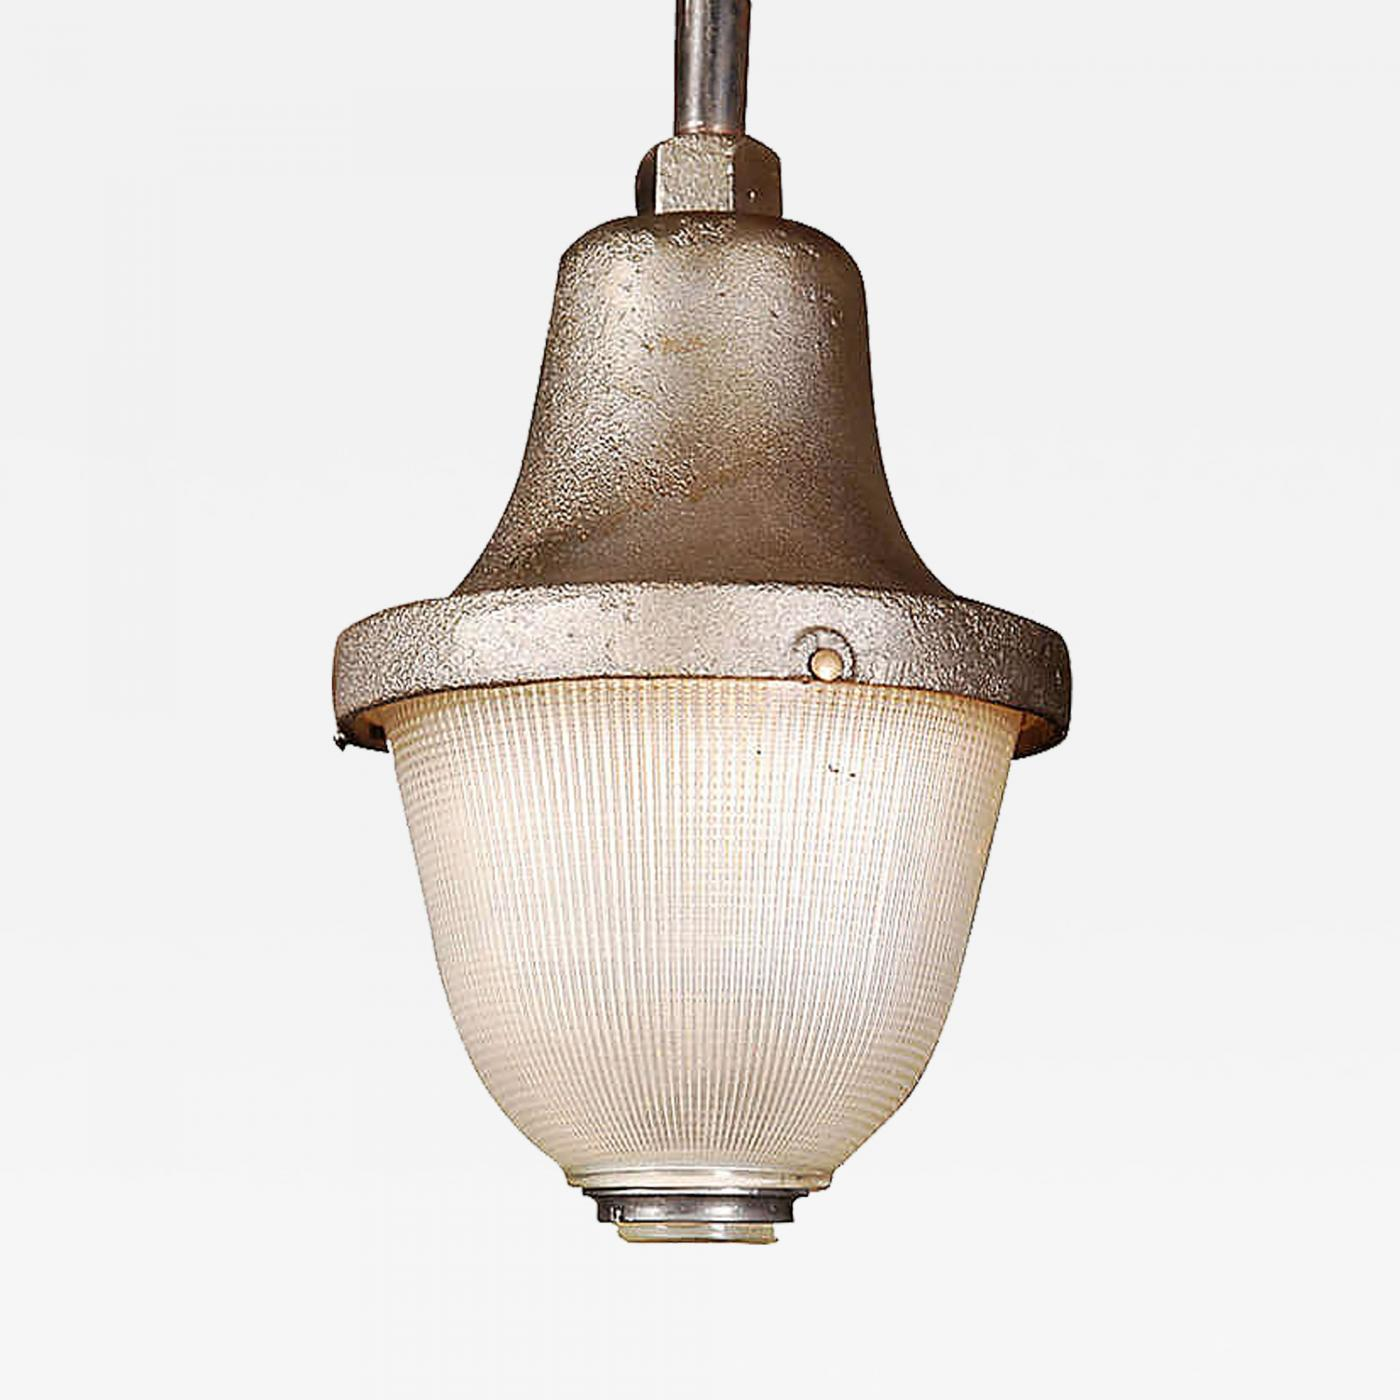 Vintage industrial holophane train station light lamp listings furniture lighting chandeliers and pendants arubaitofo Image collections